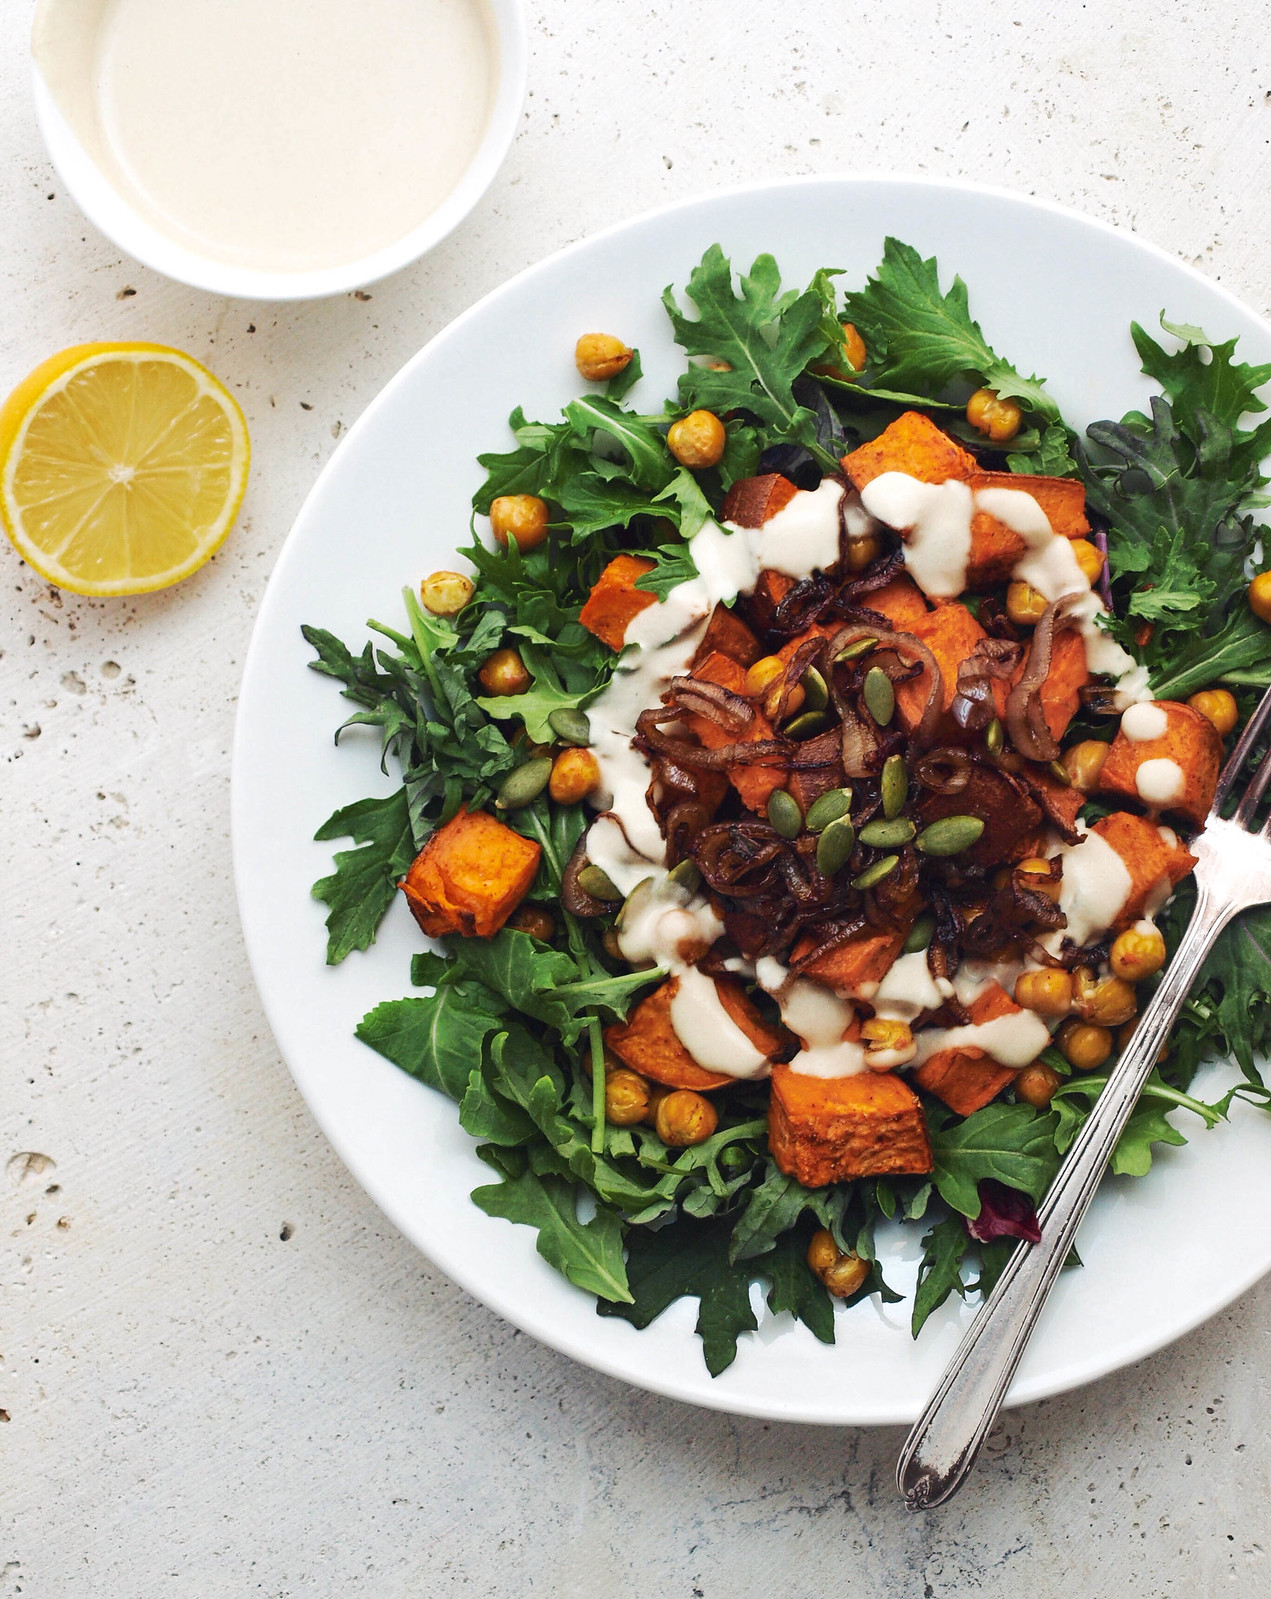 SWEET POTATO & CHICKPEA SALAD + CRISPY SHALLOTS